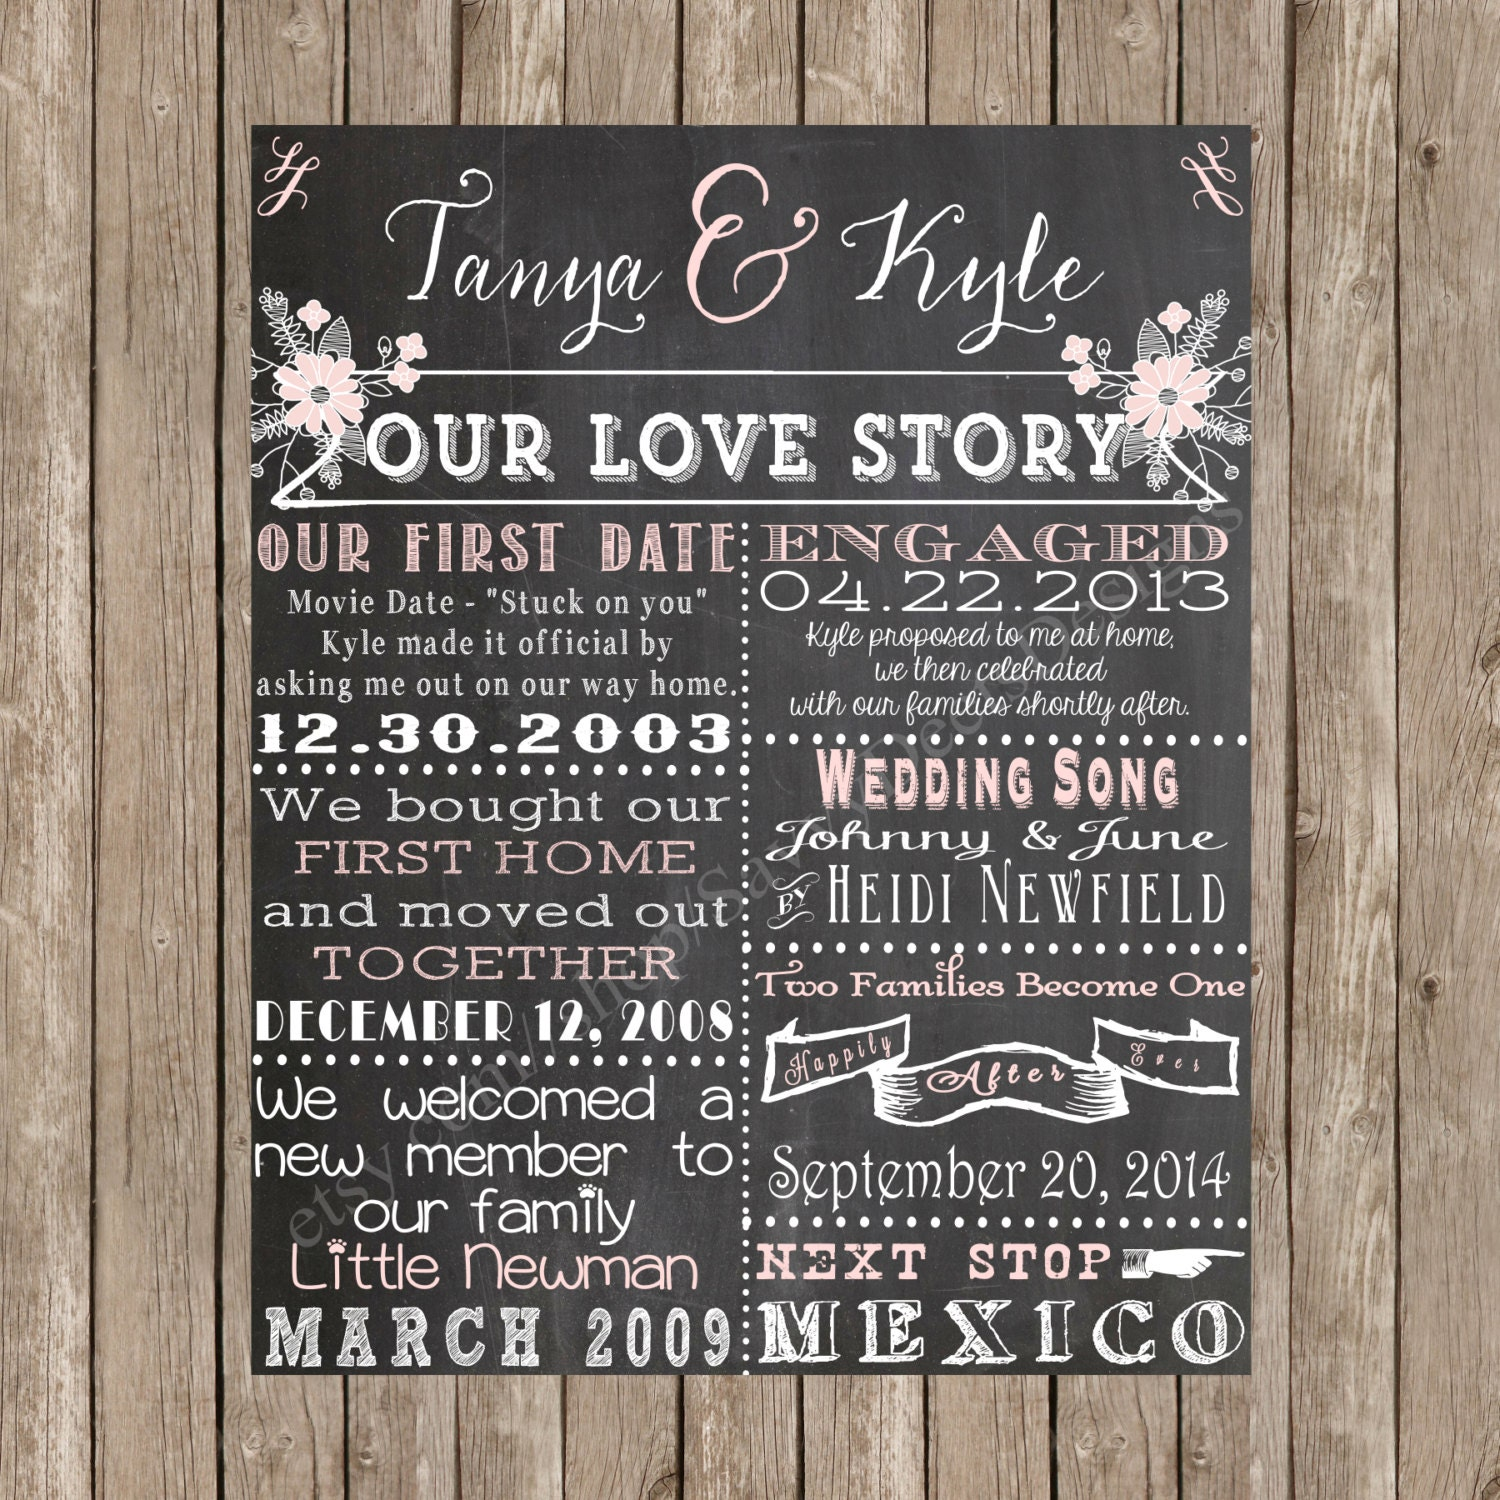 Our Love Story Wedding Idea: Chalkboard Love Story Printable Poster Shabby Chic Wedding